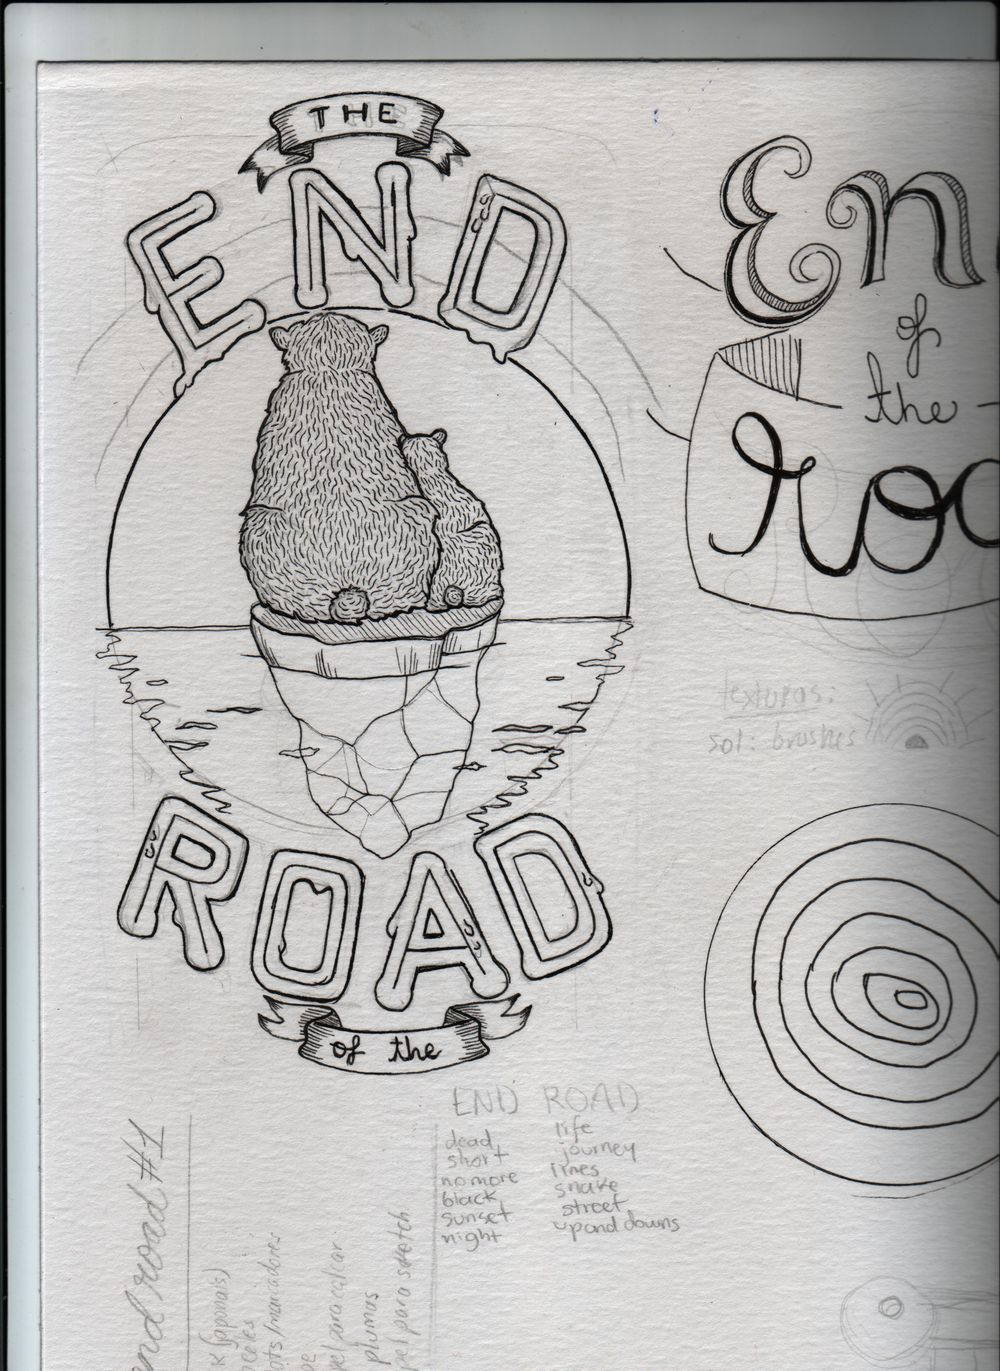 End-Road, (the...of the...) - image 2 - student project